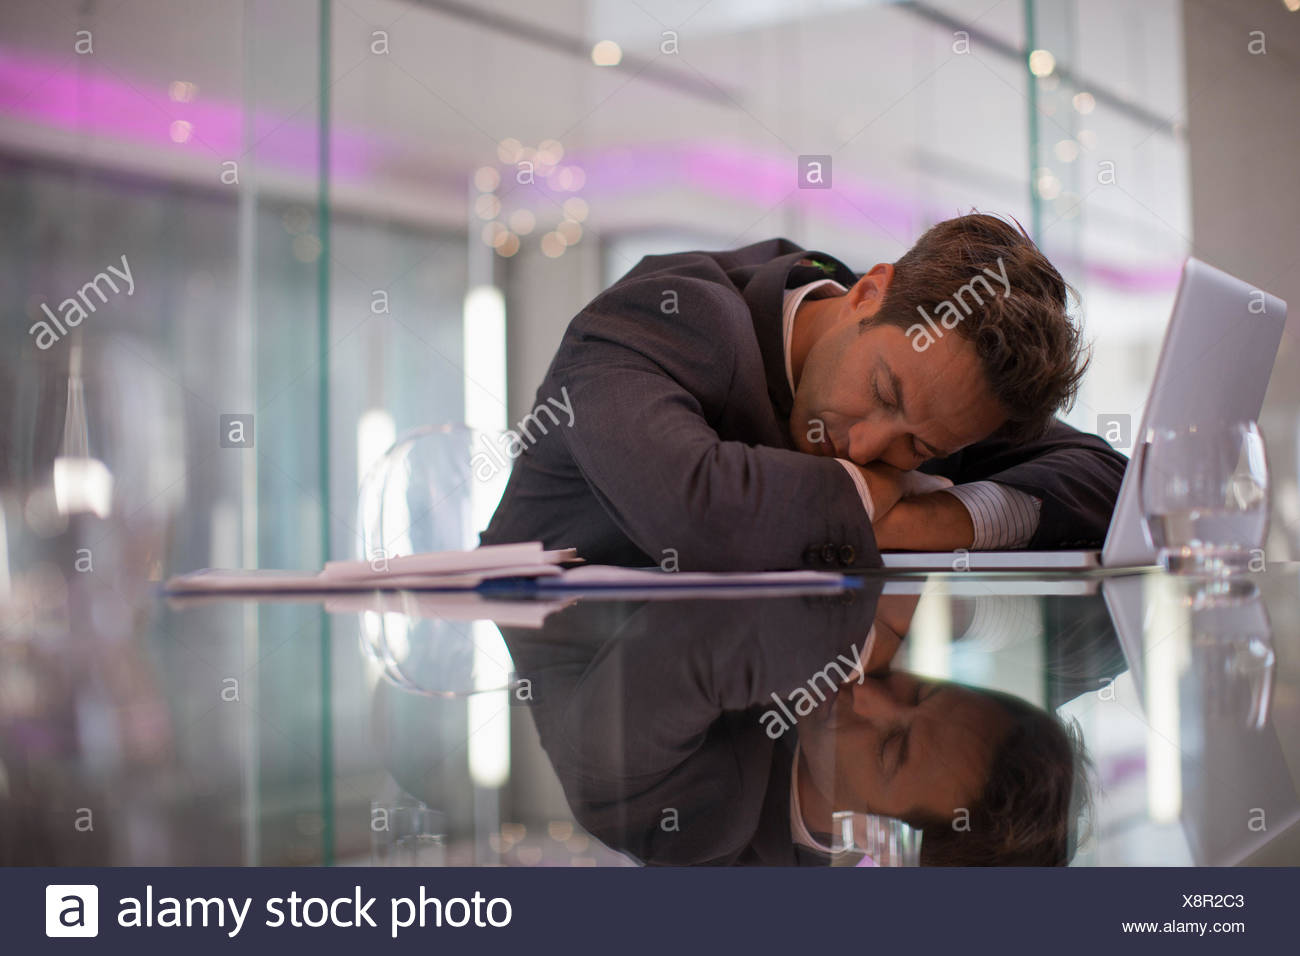 Businessman sleeping at desk in office - Stock Image